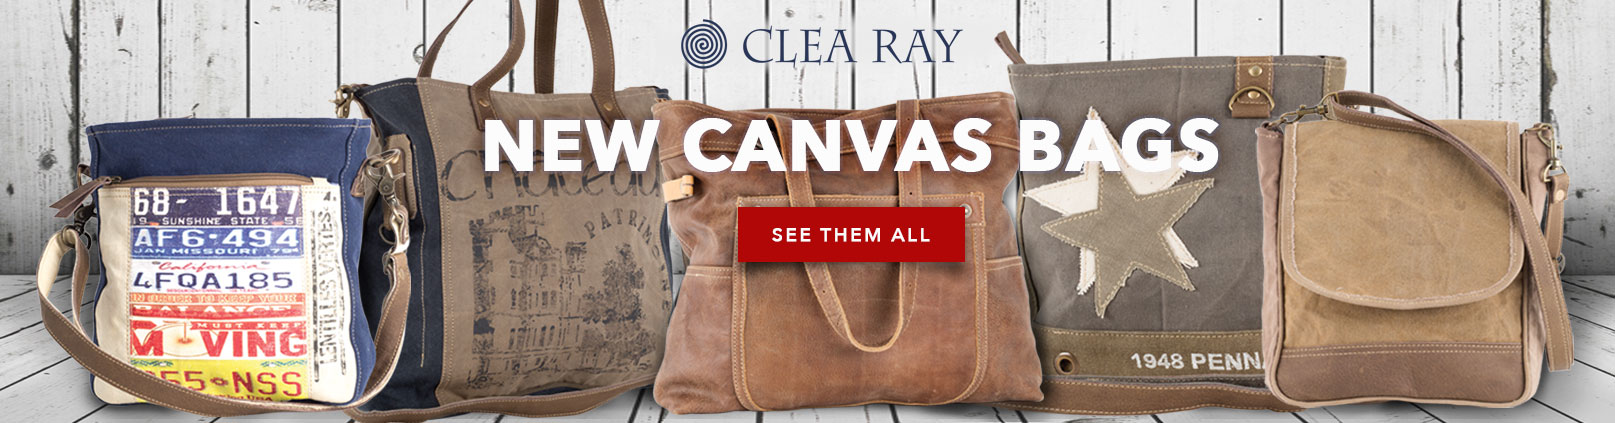 new canvas bags